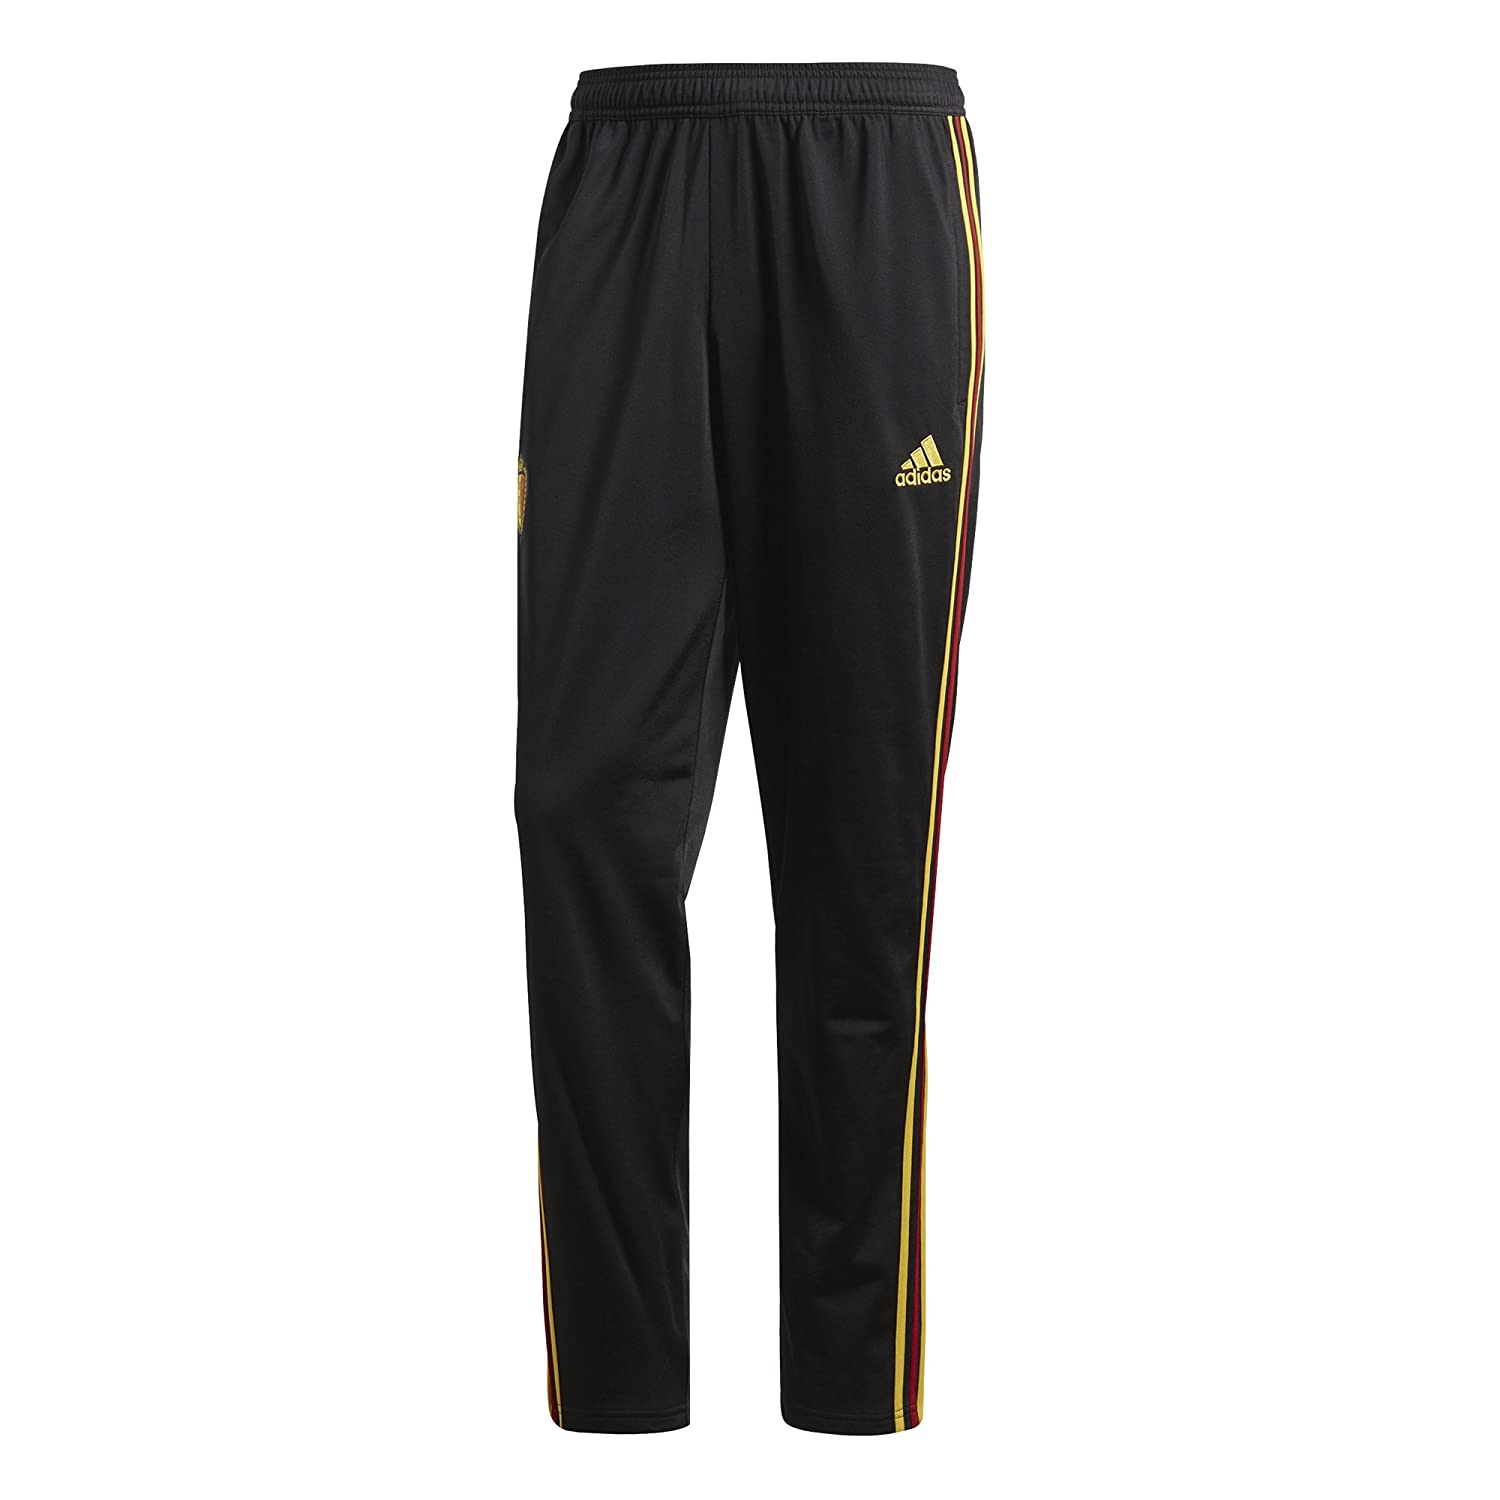 2018-2019 Belgium Adidas Presentation Pants (Black) B077NJYKBQ Medium 34